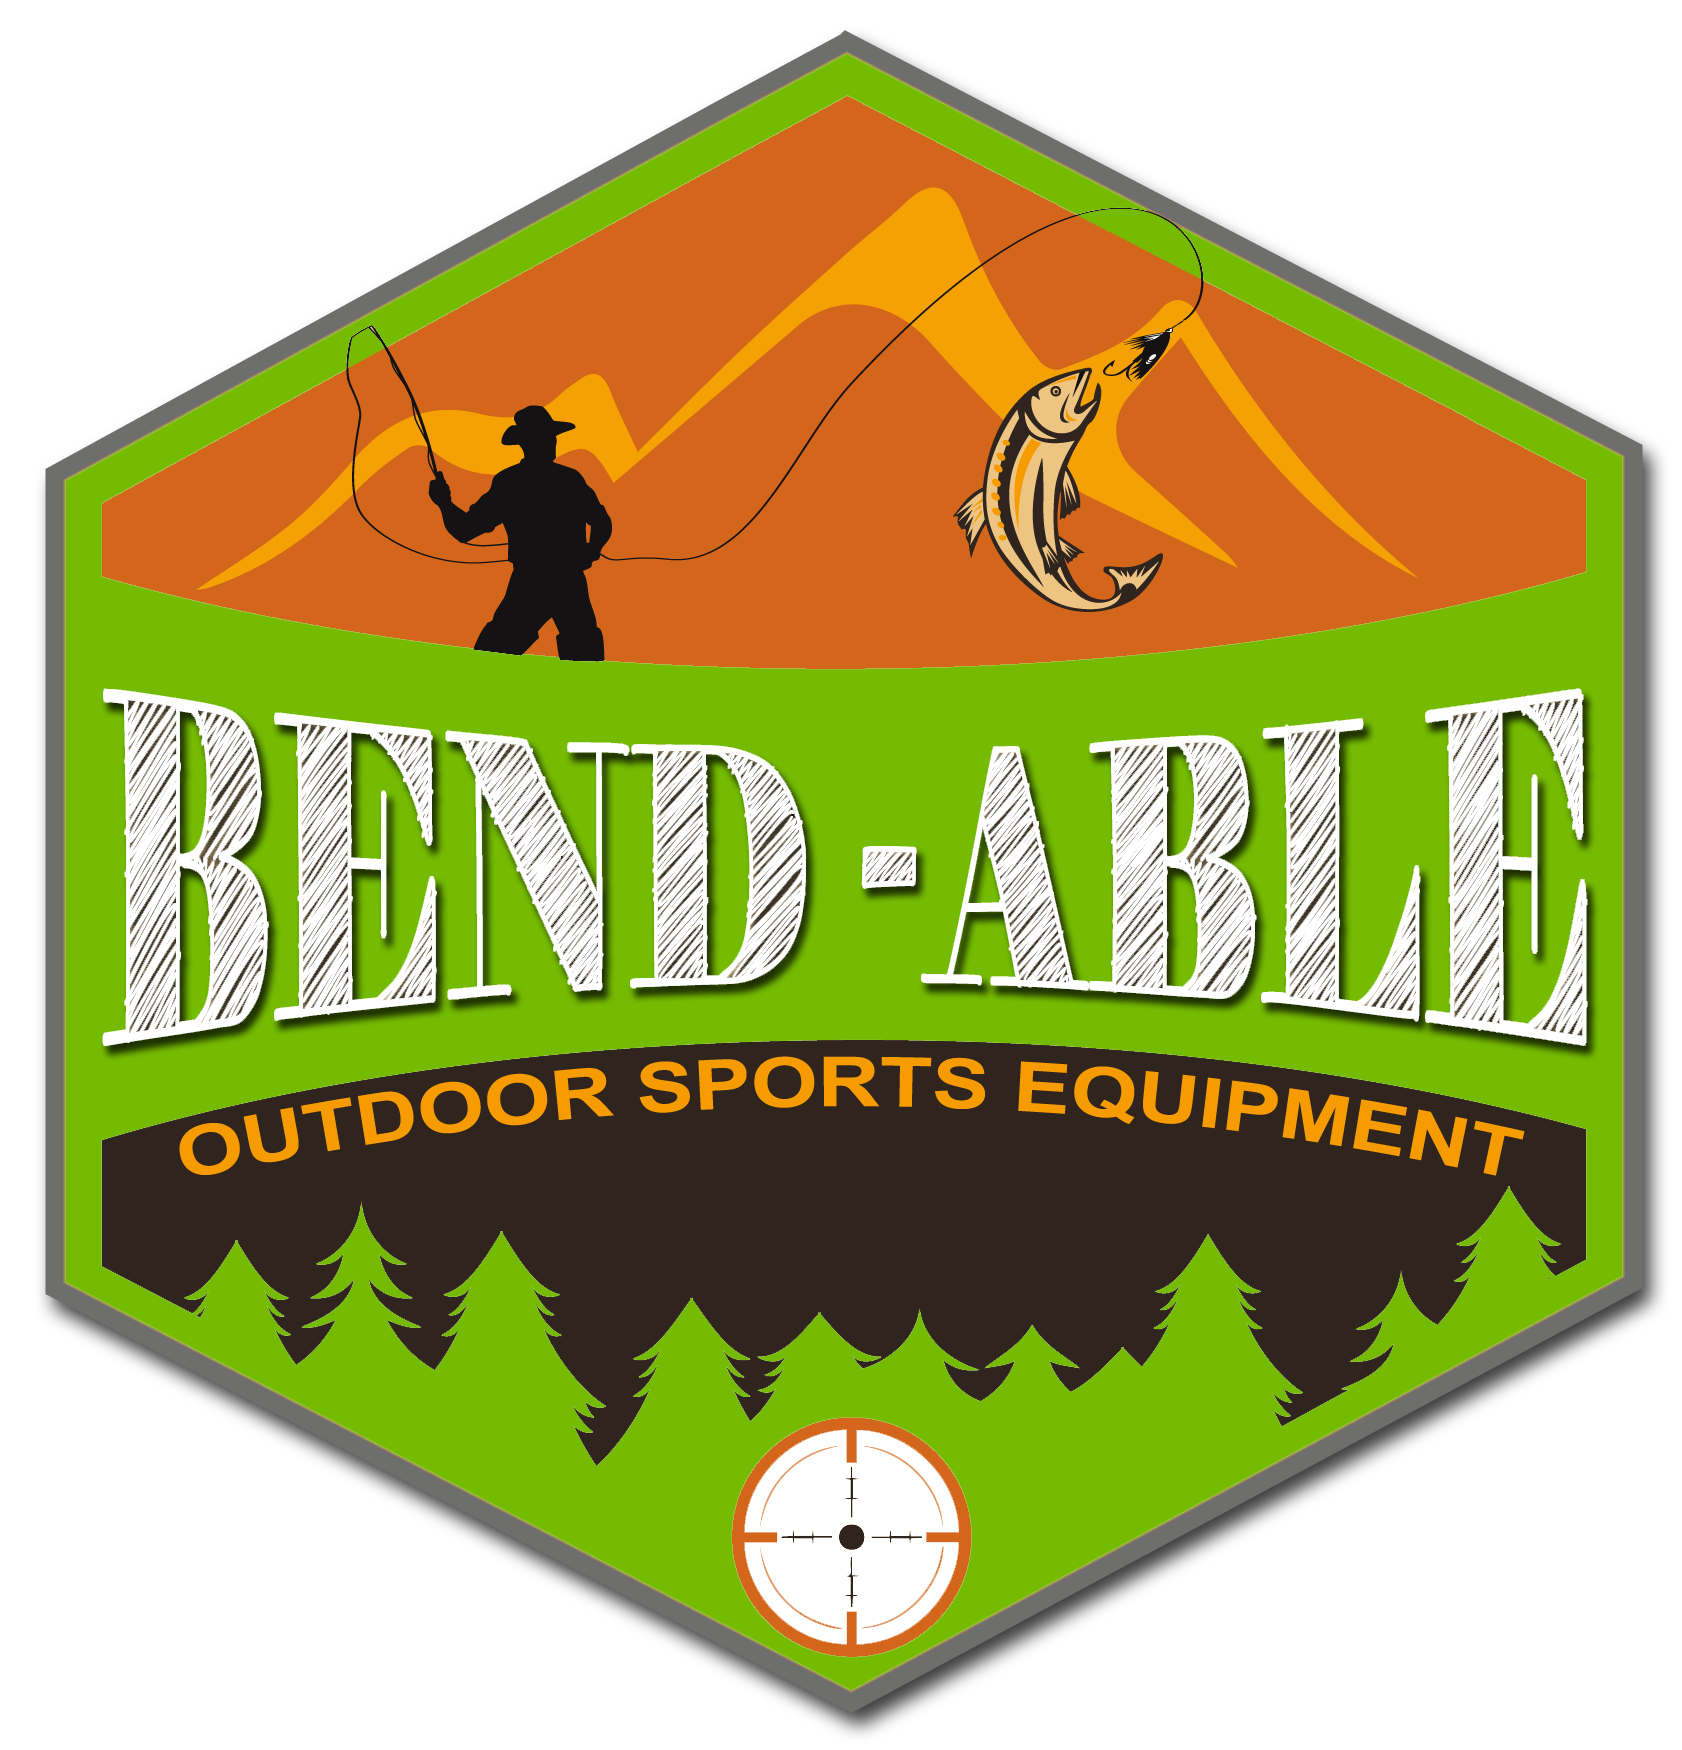 bendable_logo4.png